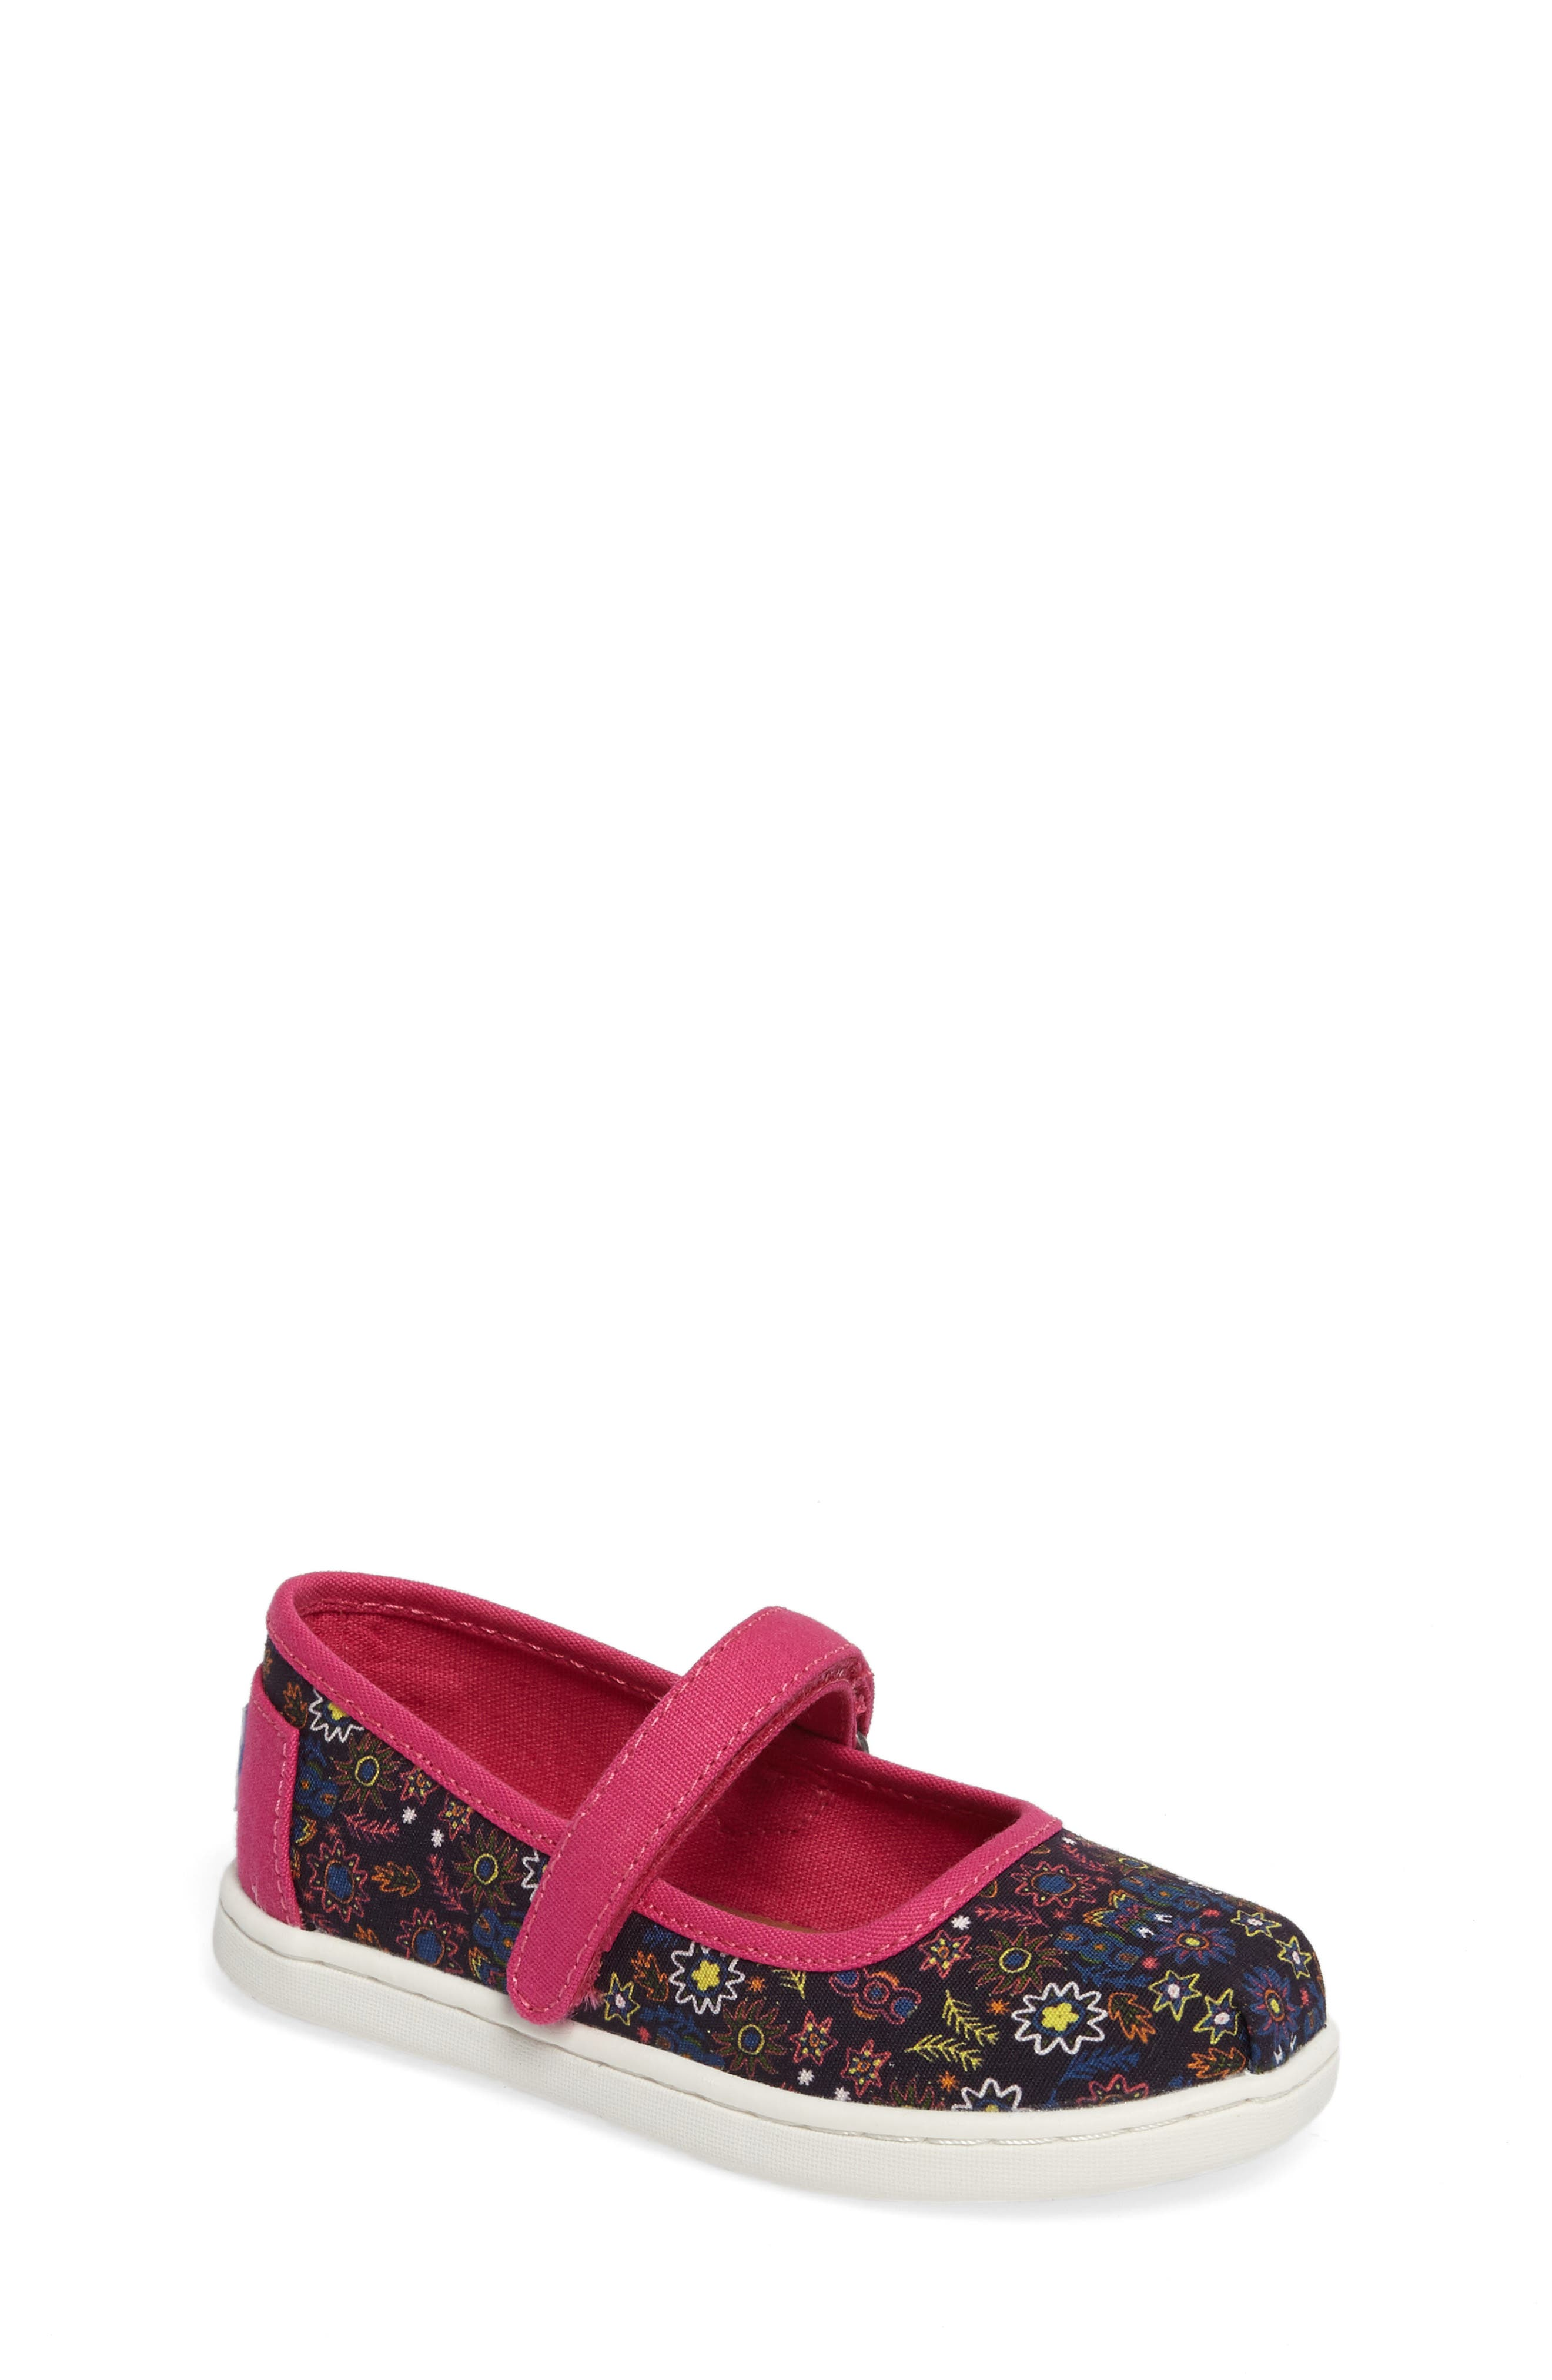 Main Image - TOMS Tiny Mary Jane Flat (Baby, Walker & Toddler)